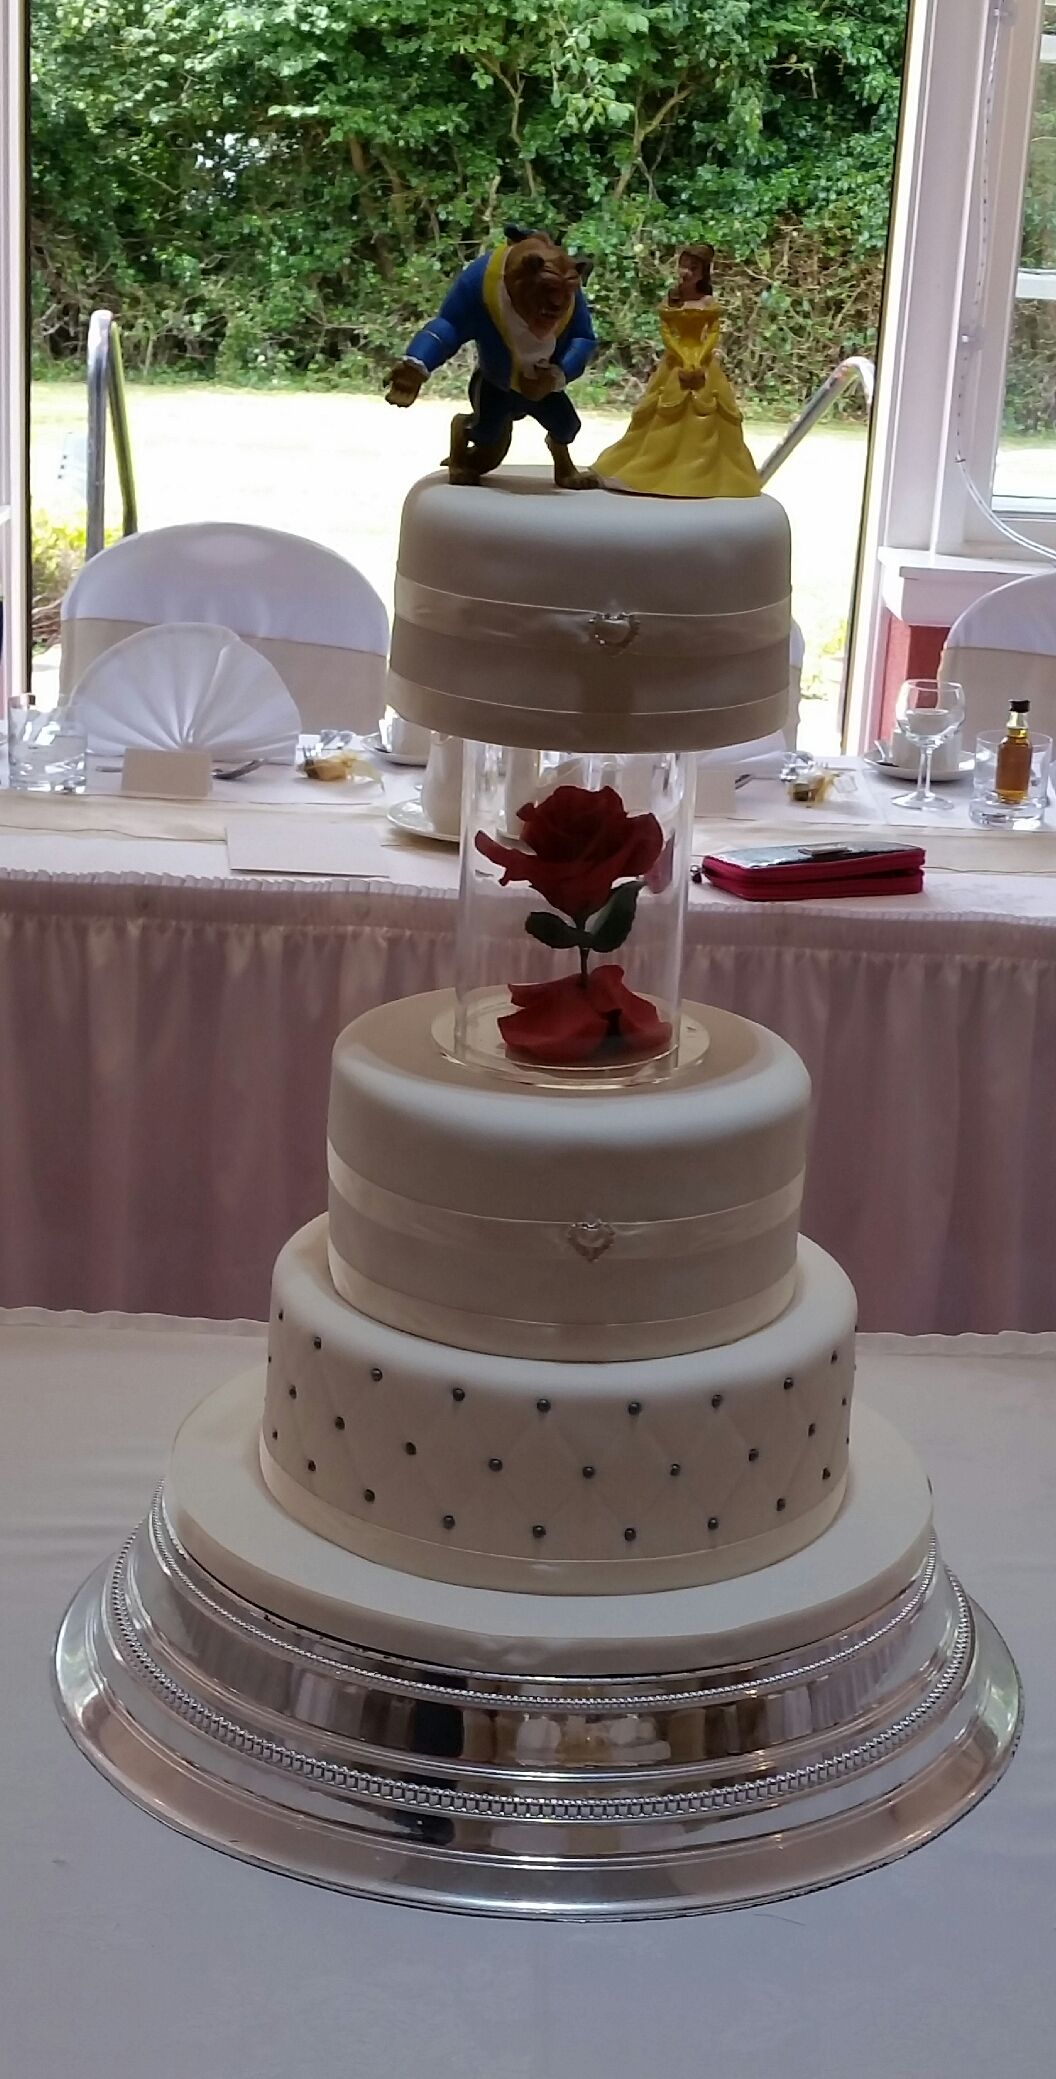 Beauty And The Beast Inspired 3 Tier Wedding Cake With Handmade